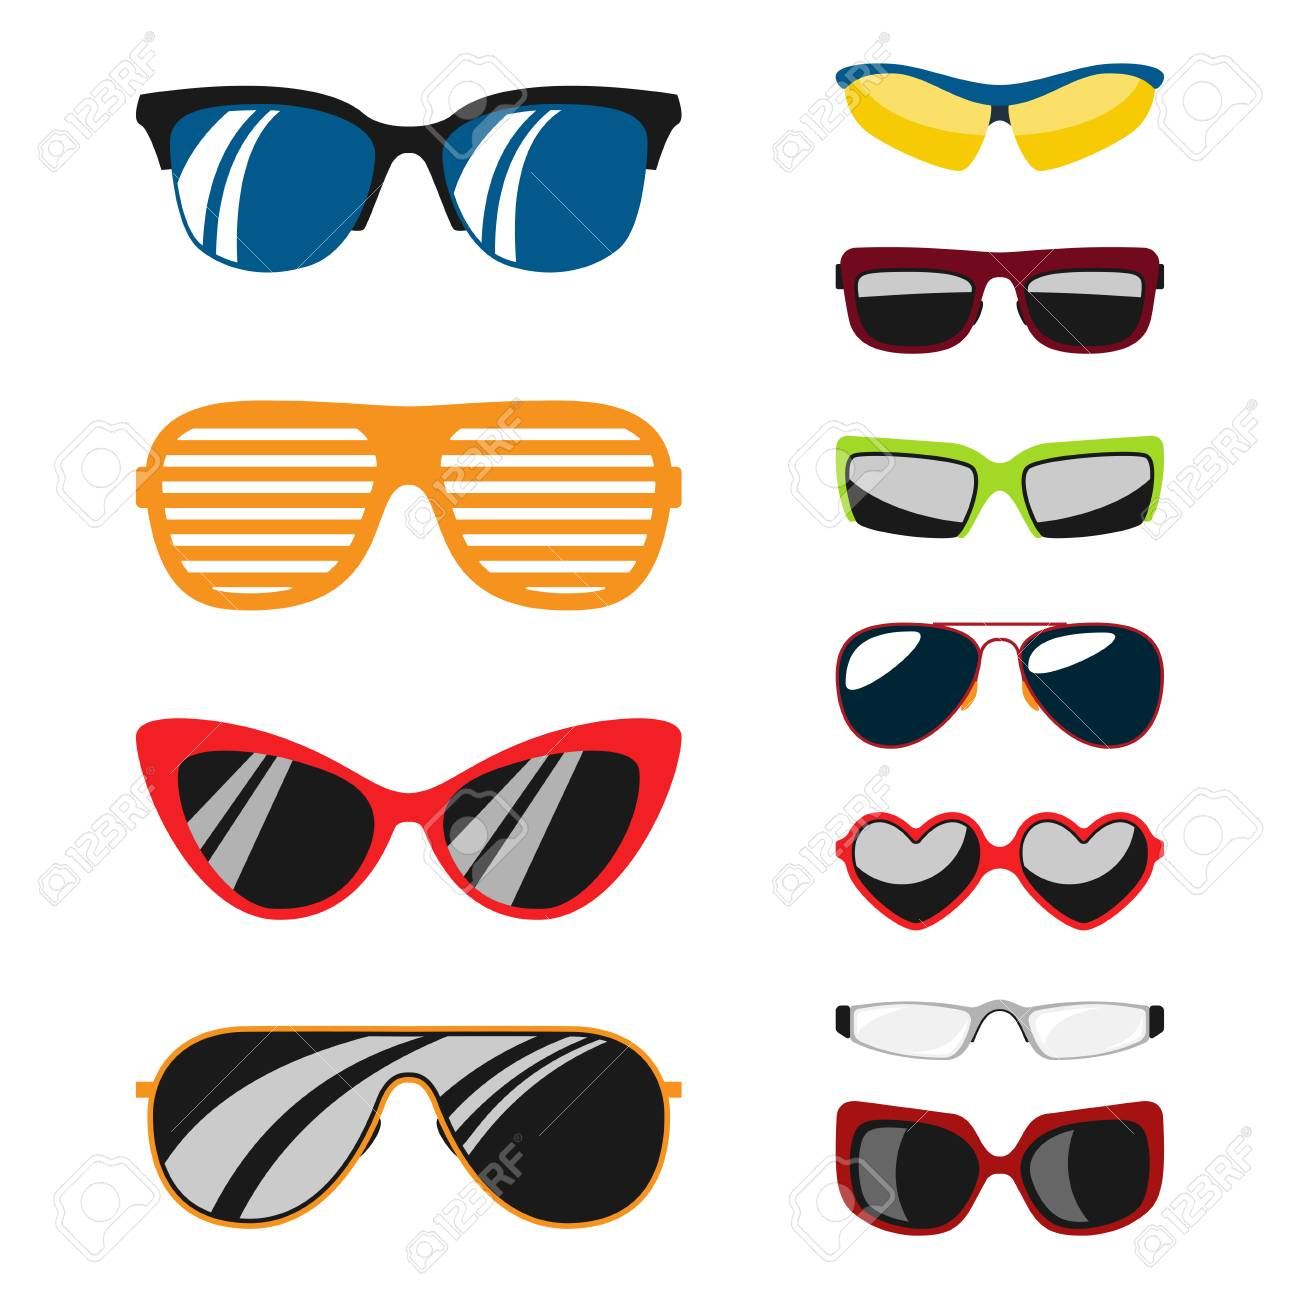 2c17b4f43c72 Fashion set sunglasses accessory sun spectacles plastic frame modern eyeglasses  vector illustration. Stock Vector -